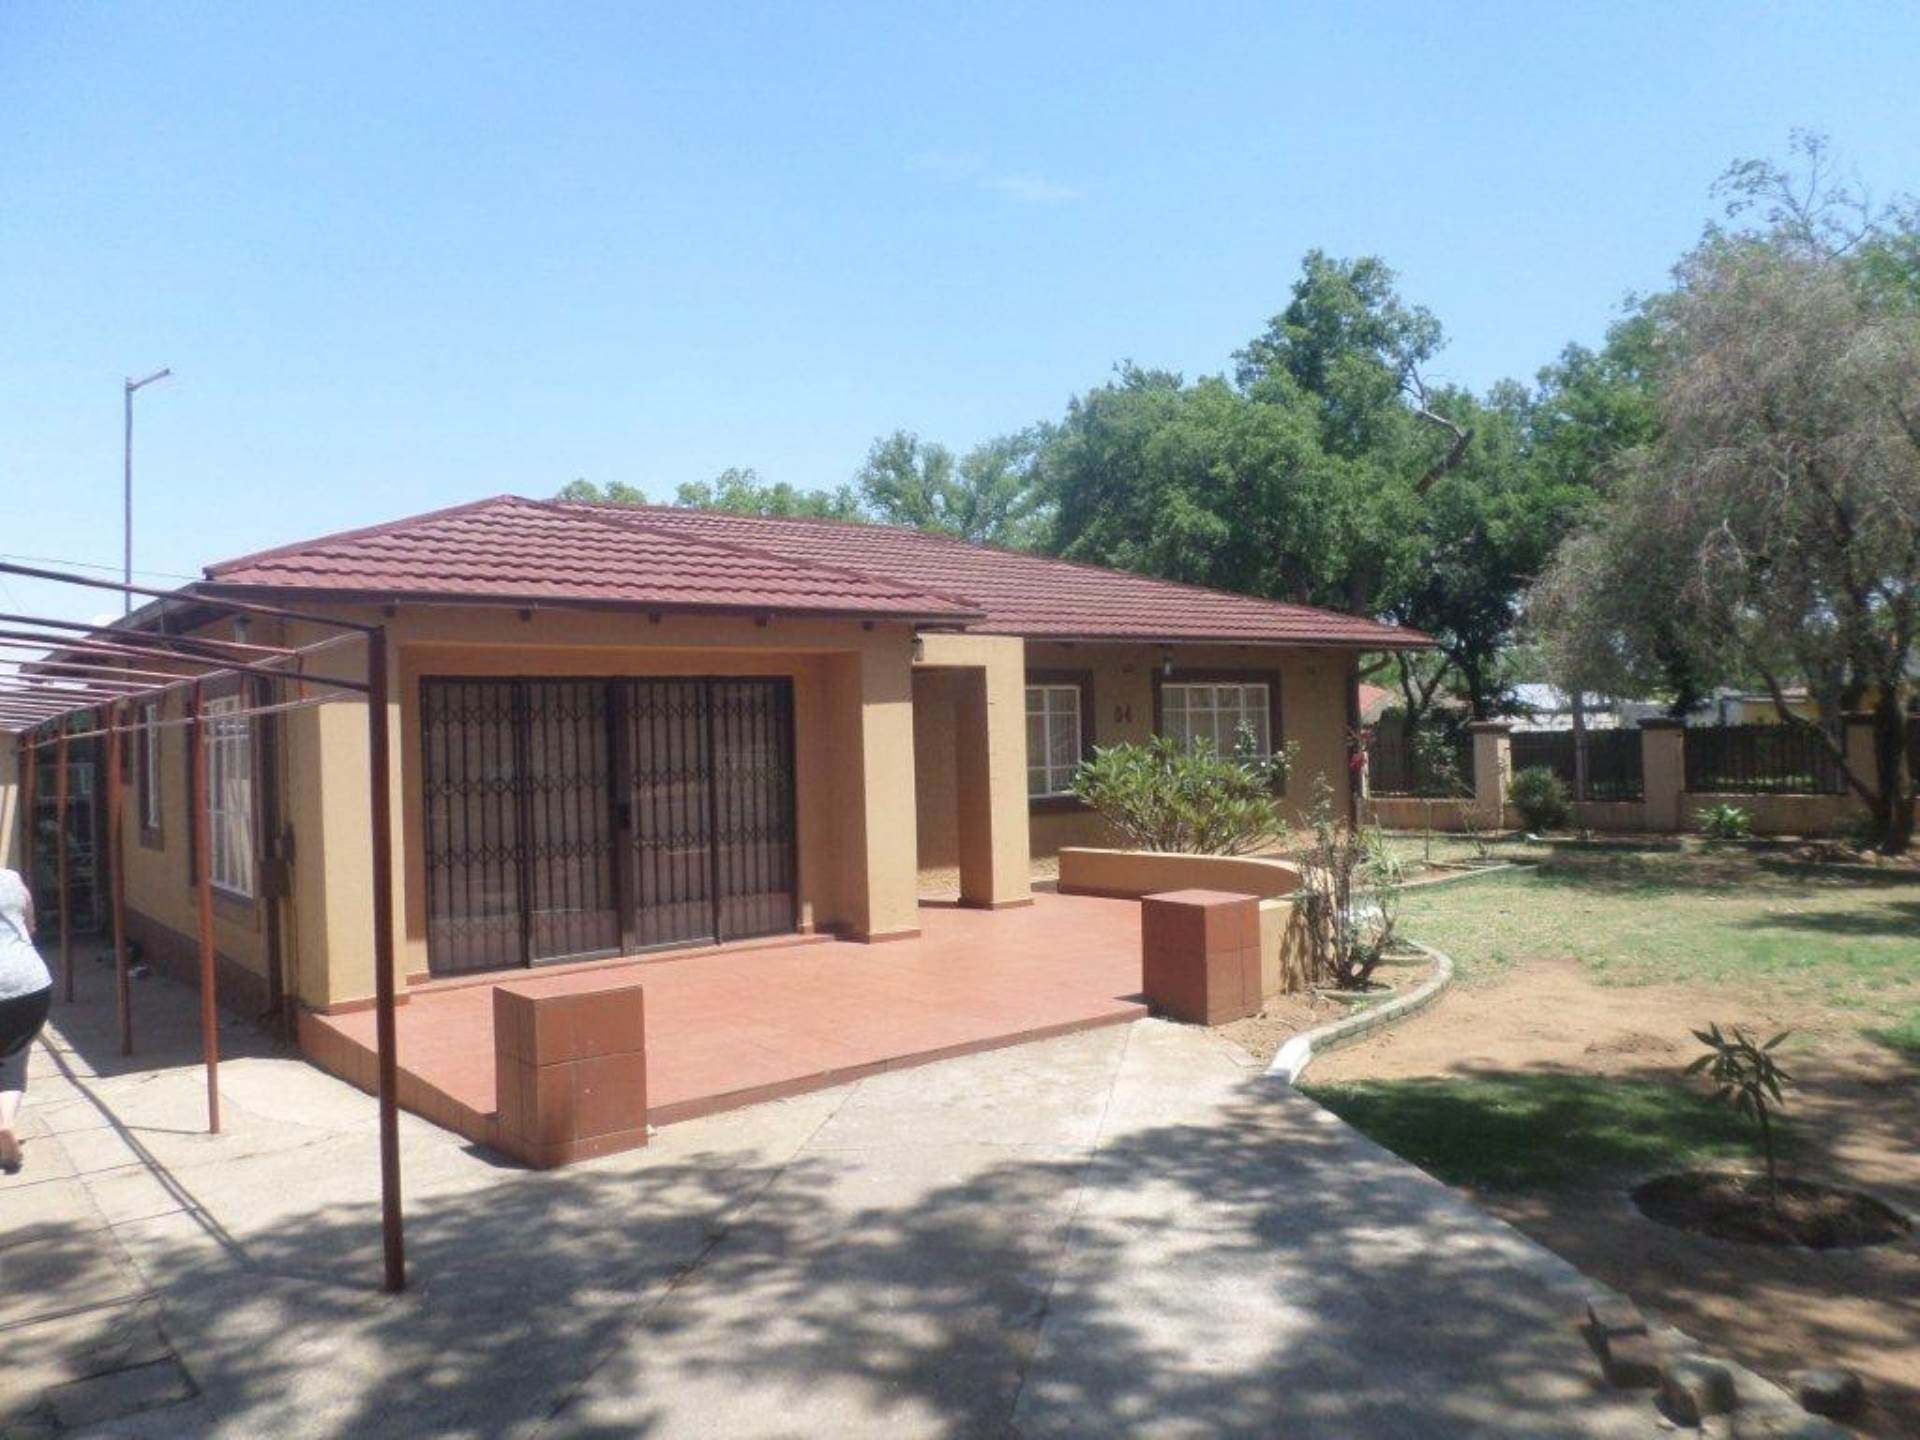 3 BedroomHouse For Sale In Vanderbijlpark Central West 6